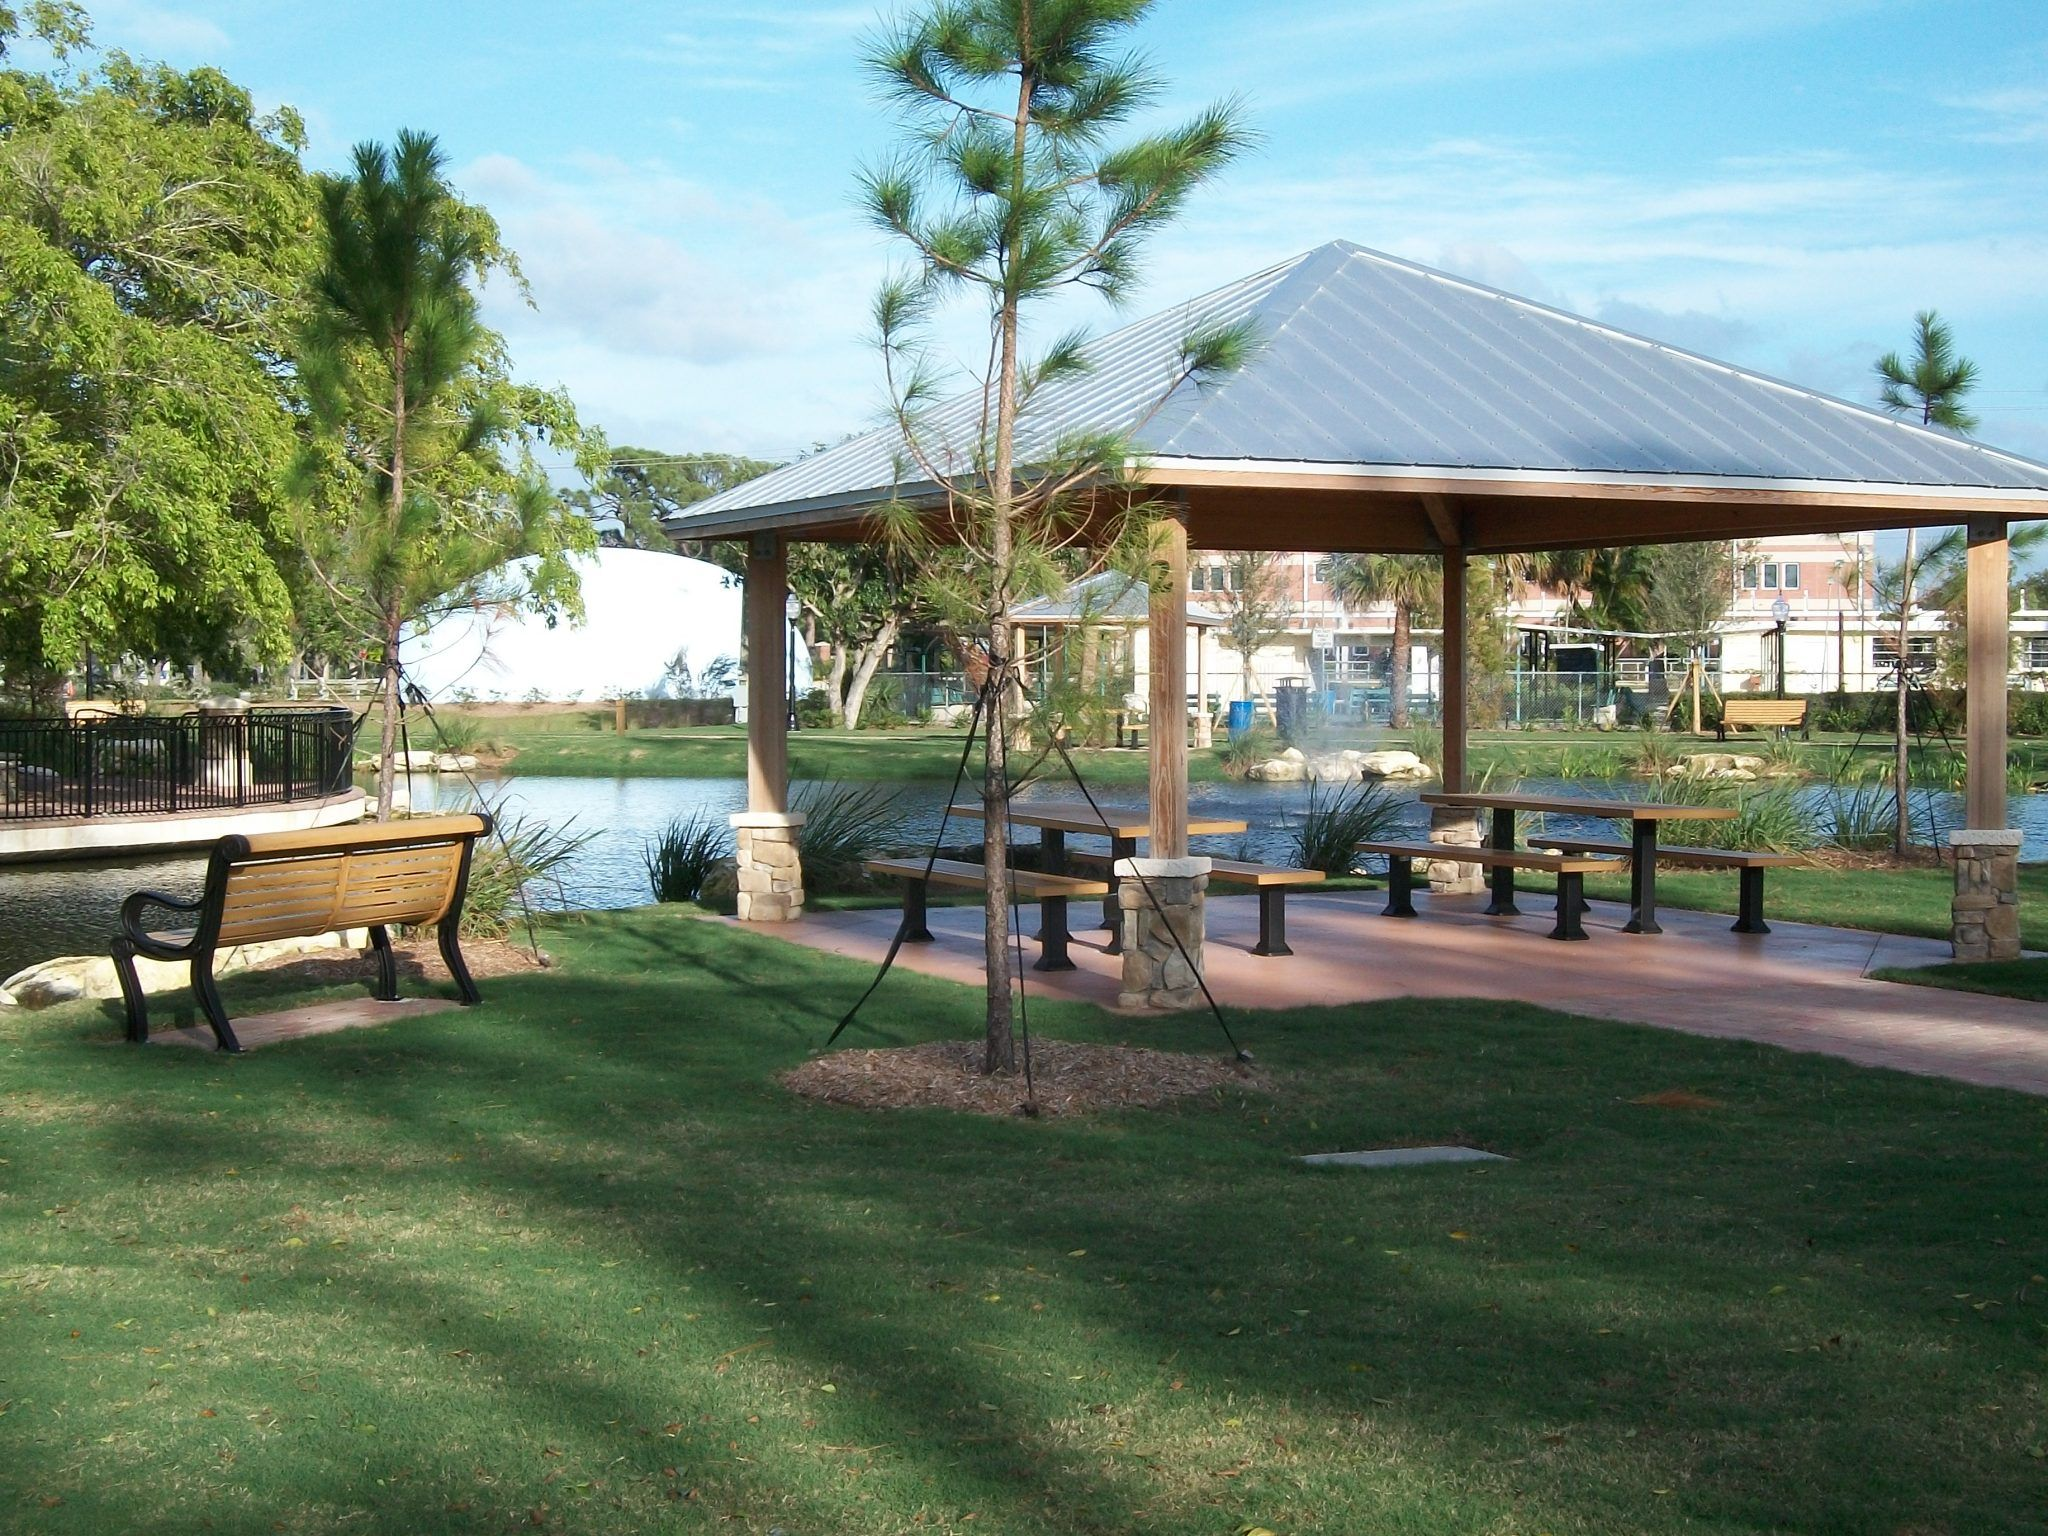 Park with gazebo and benches